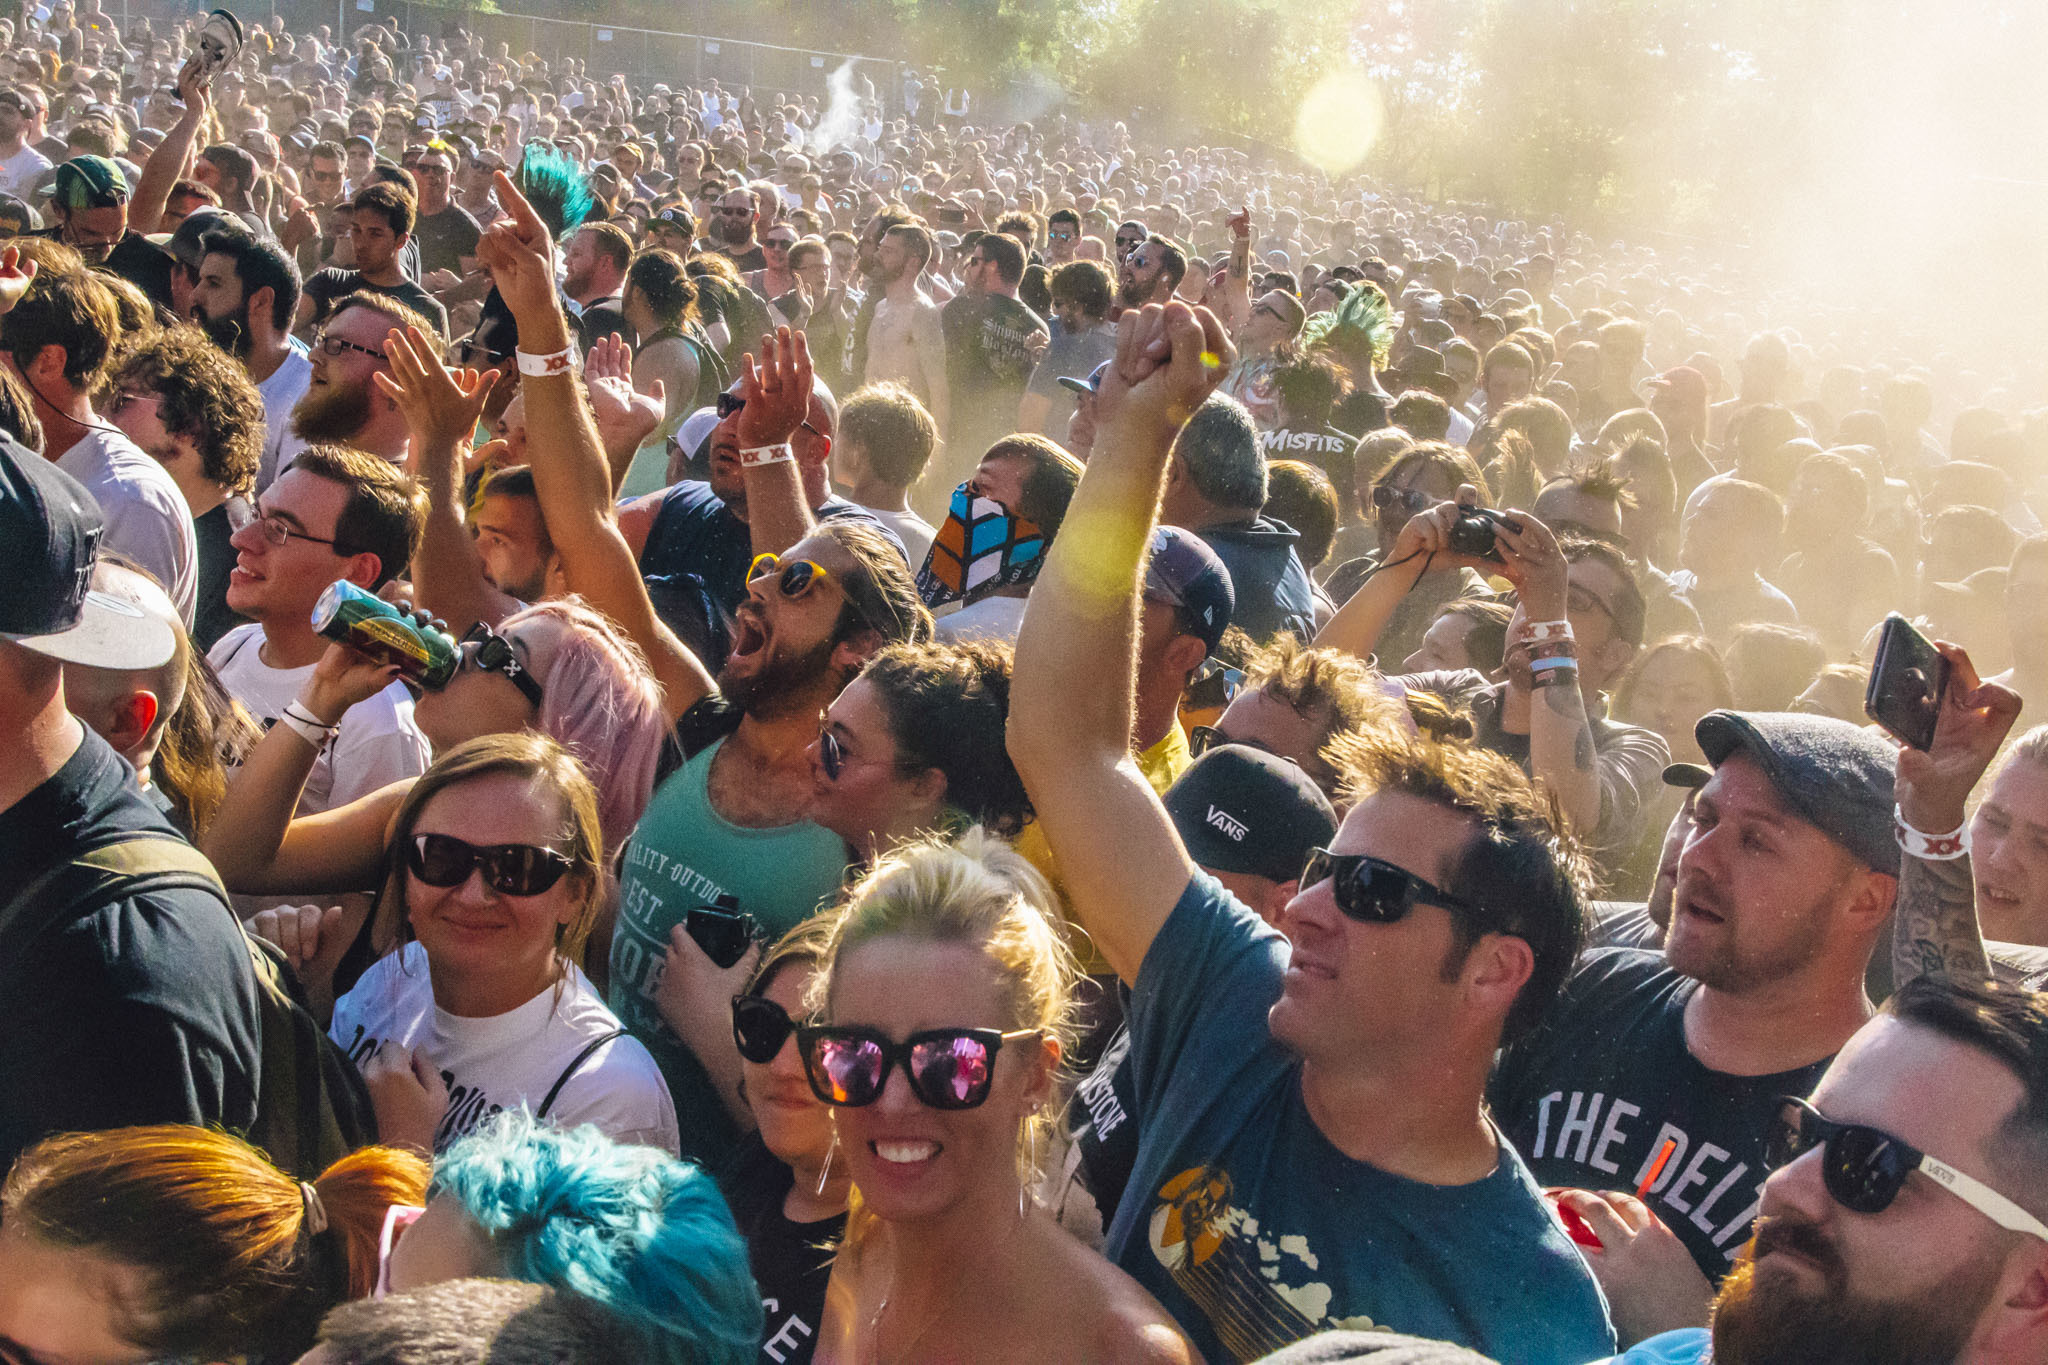 Relive Riot Fest 2018 with our gallery of amazing photos